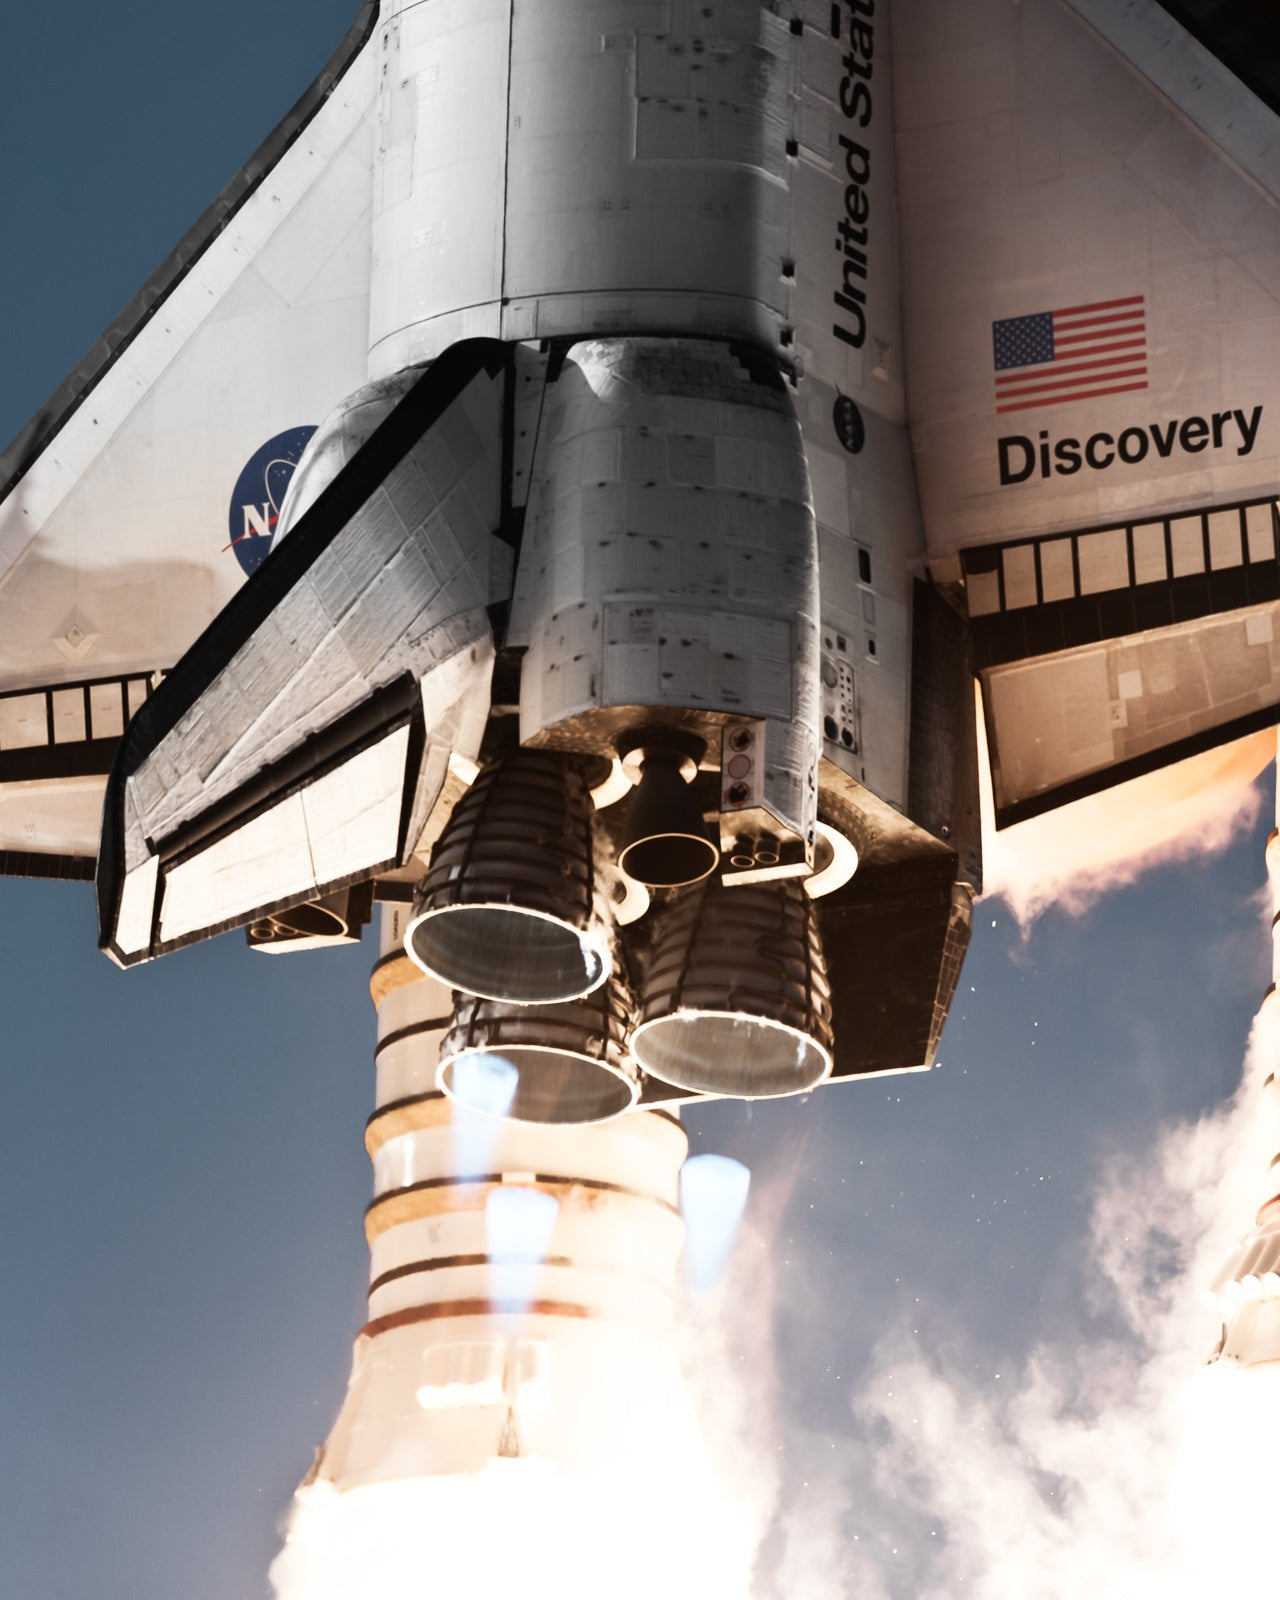 How One Photographer Took Incredible Close-Ups of Space Shuttle Launches